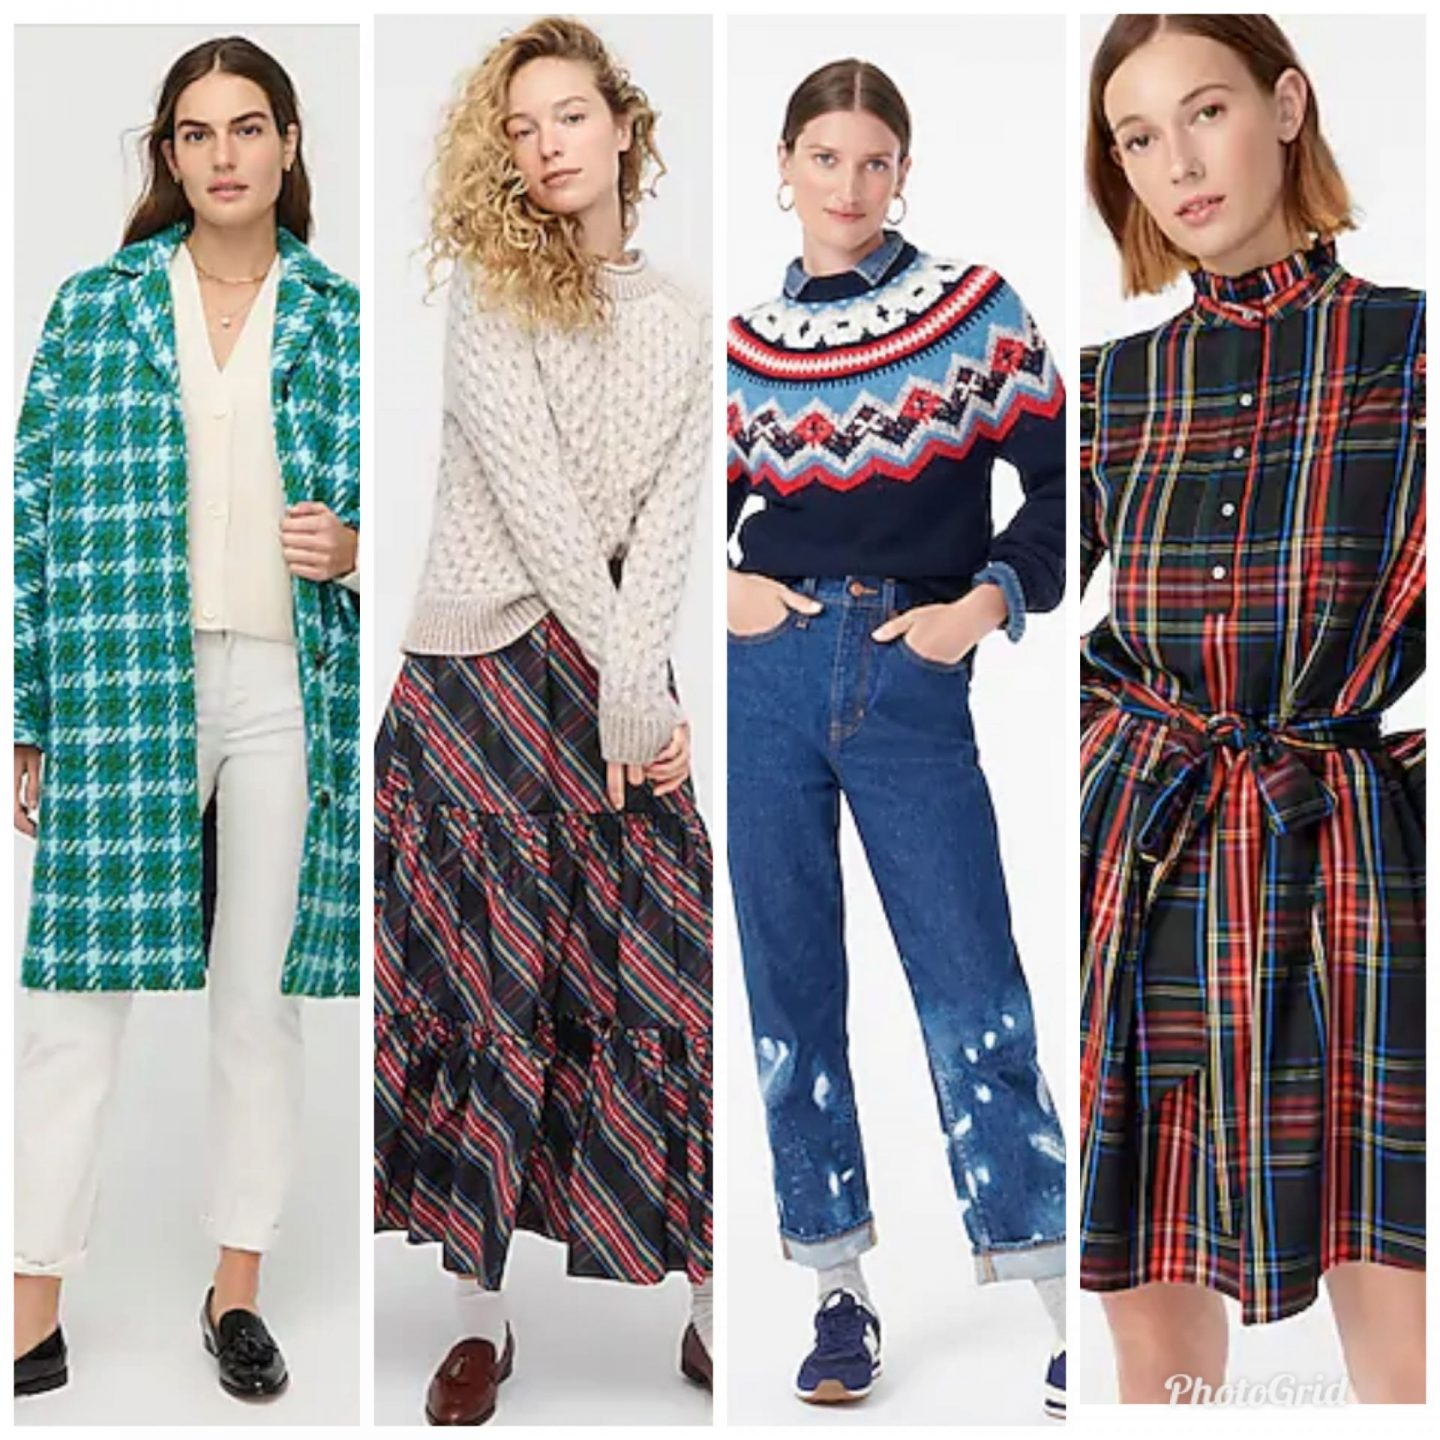 J Crew New Arrivals by popular Kentucky fashion blog, Really Rynetta: collage image of J. Crew holiday clothing.